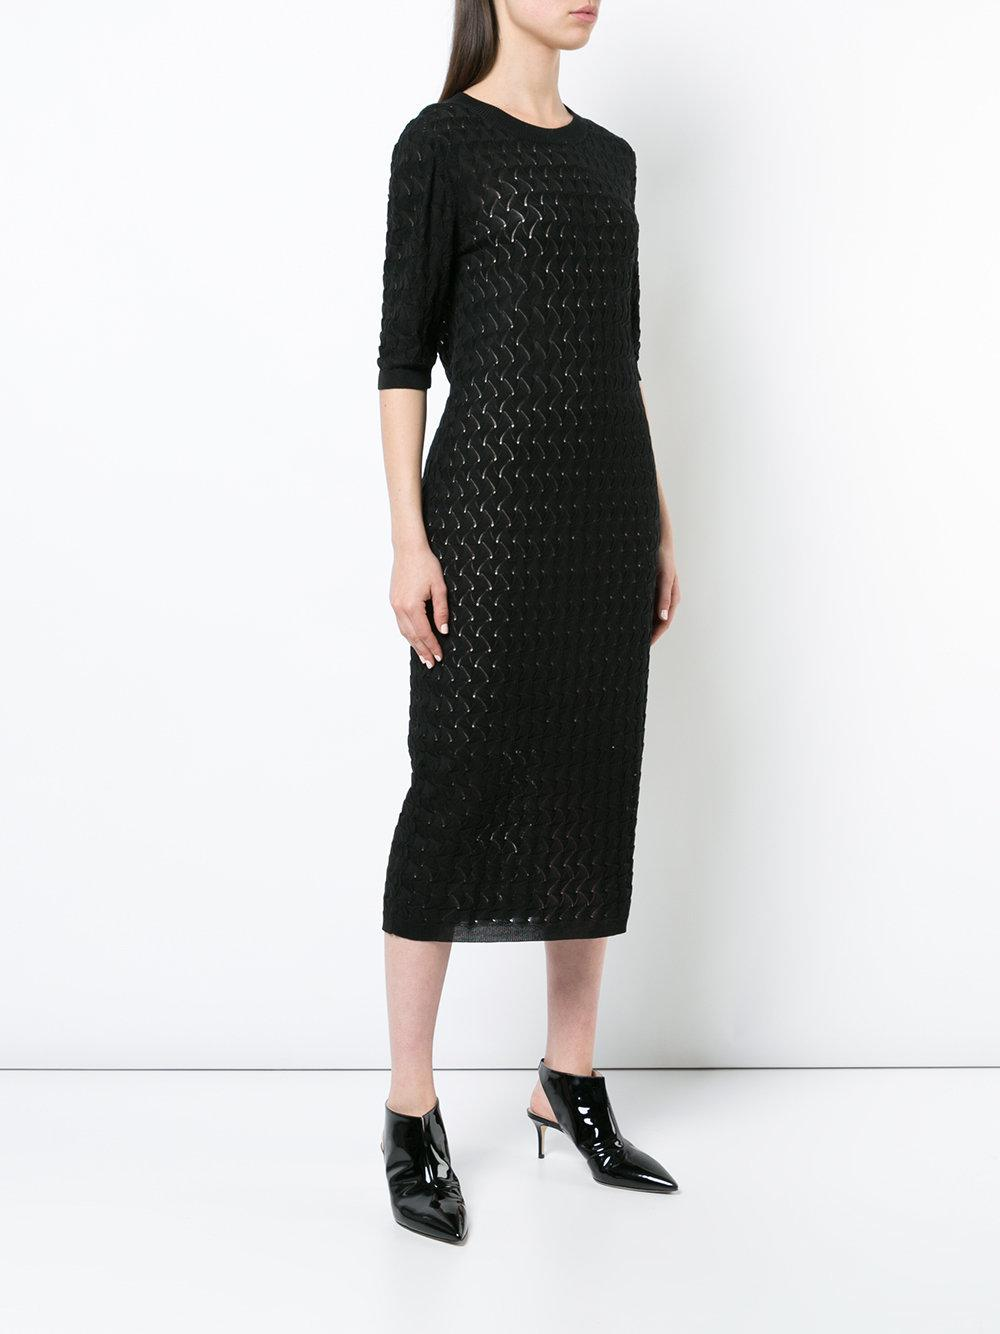 Buy Cheap 2018 Unisex perforated knit dress - Black Nellie Partow Buy Cheap Outlet Store Online Cheap Super Specials JDSlkd